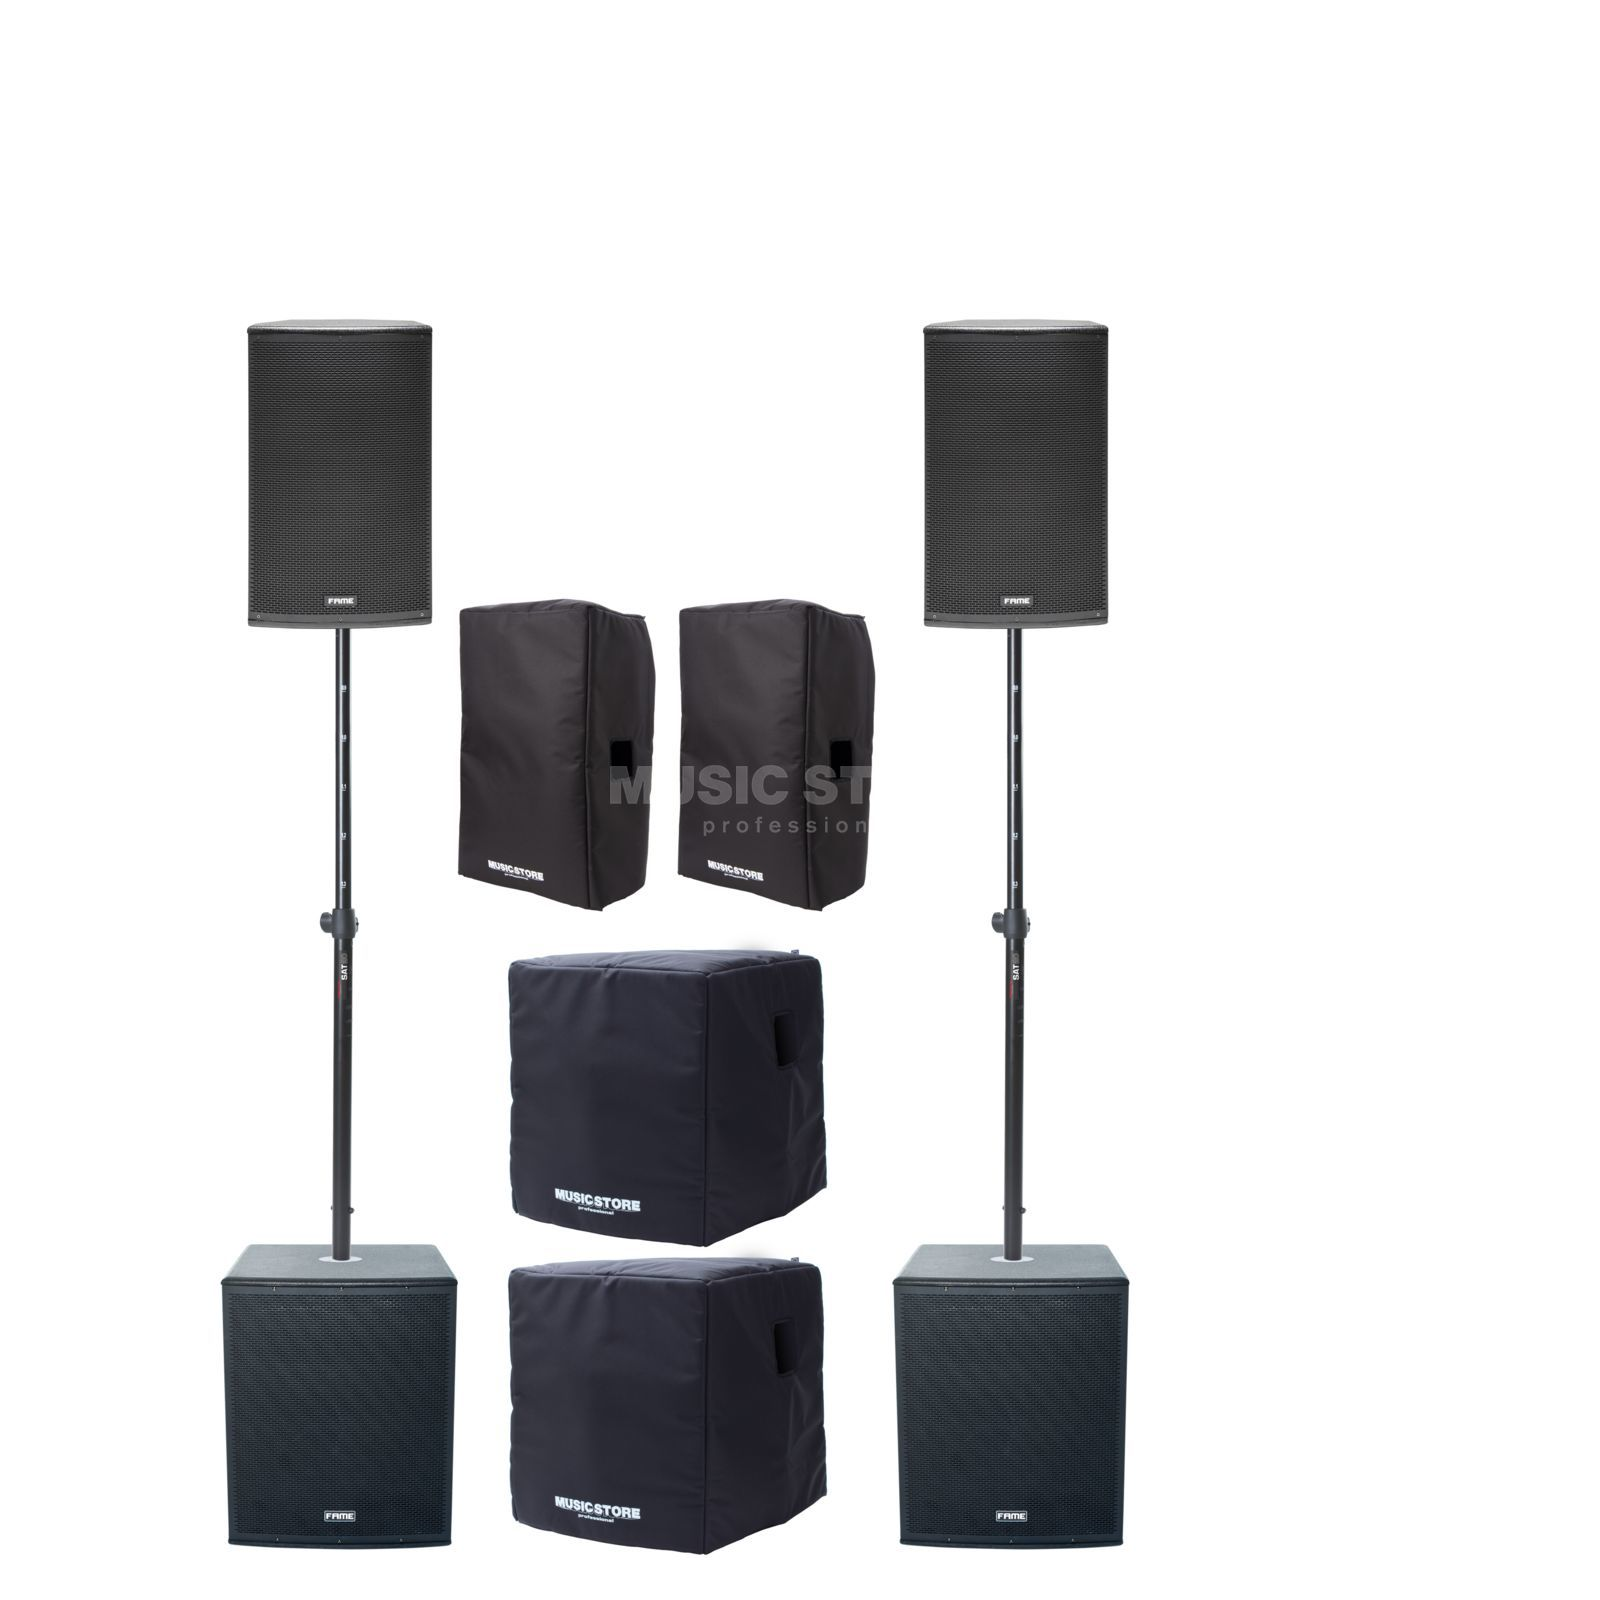 Indonesian Rupiah To Usd Fame Audio Emperor 15 Dsp Stage Set